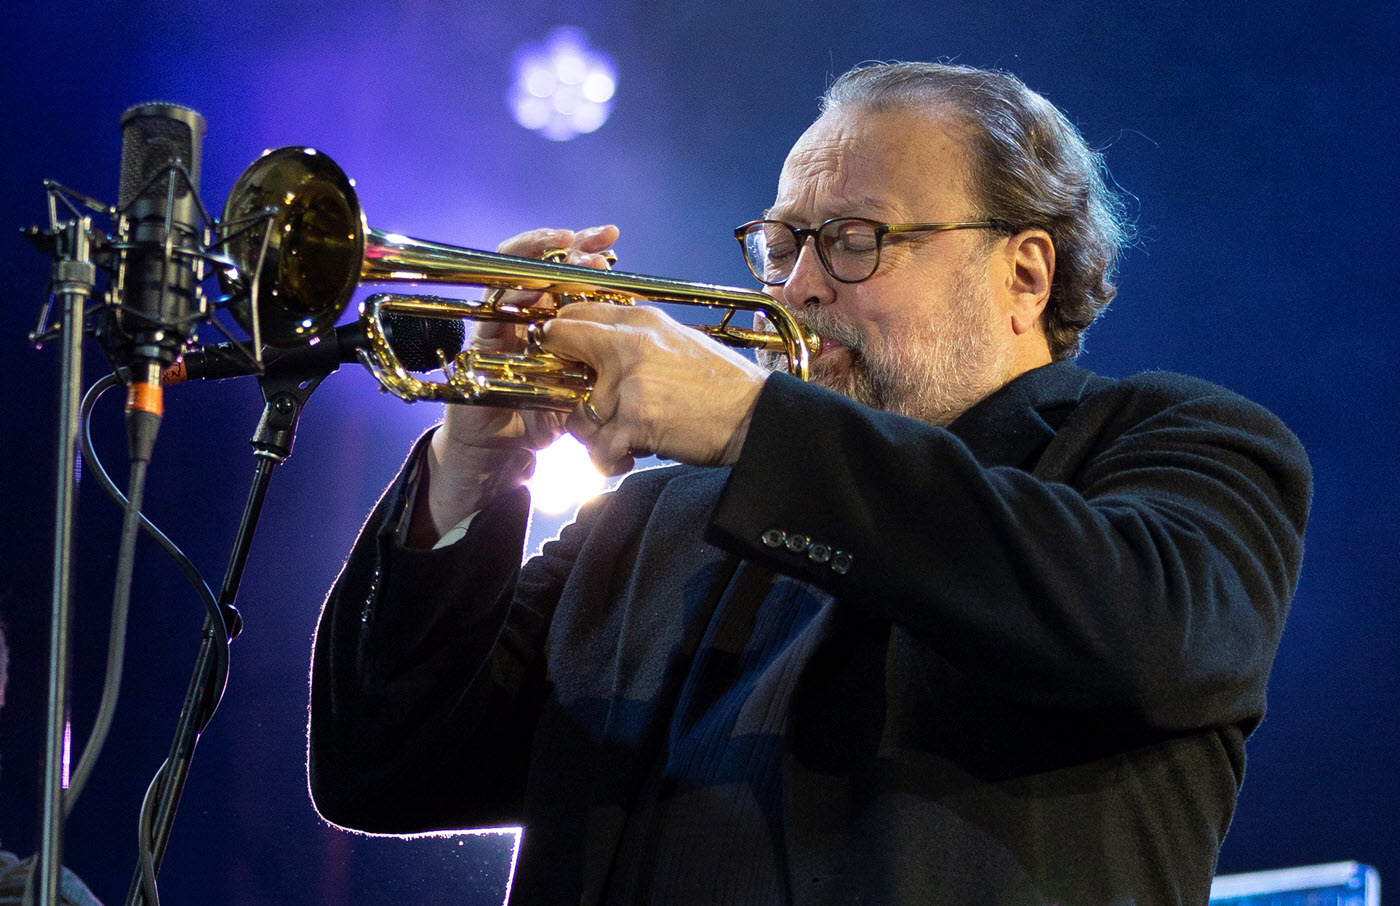 Man blowing a trumpet onstage.